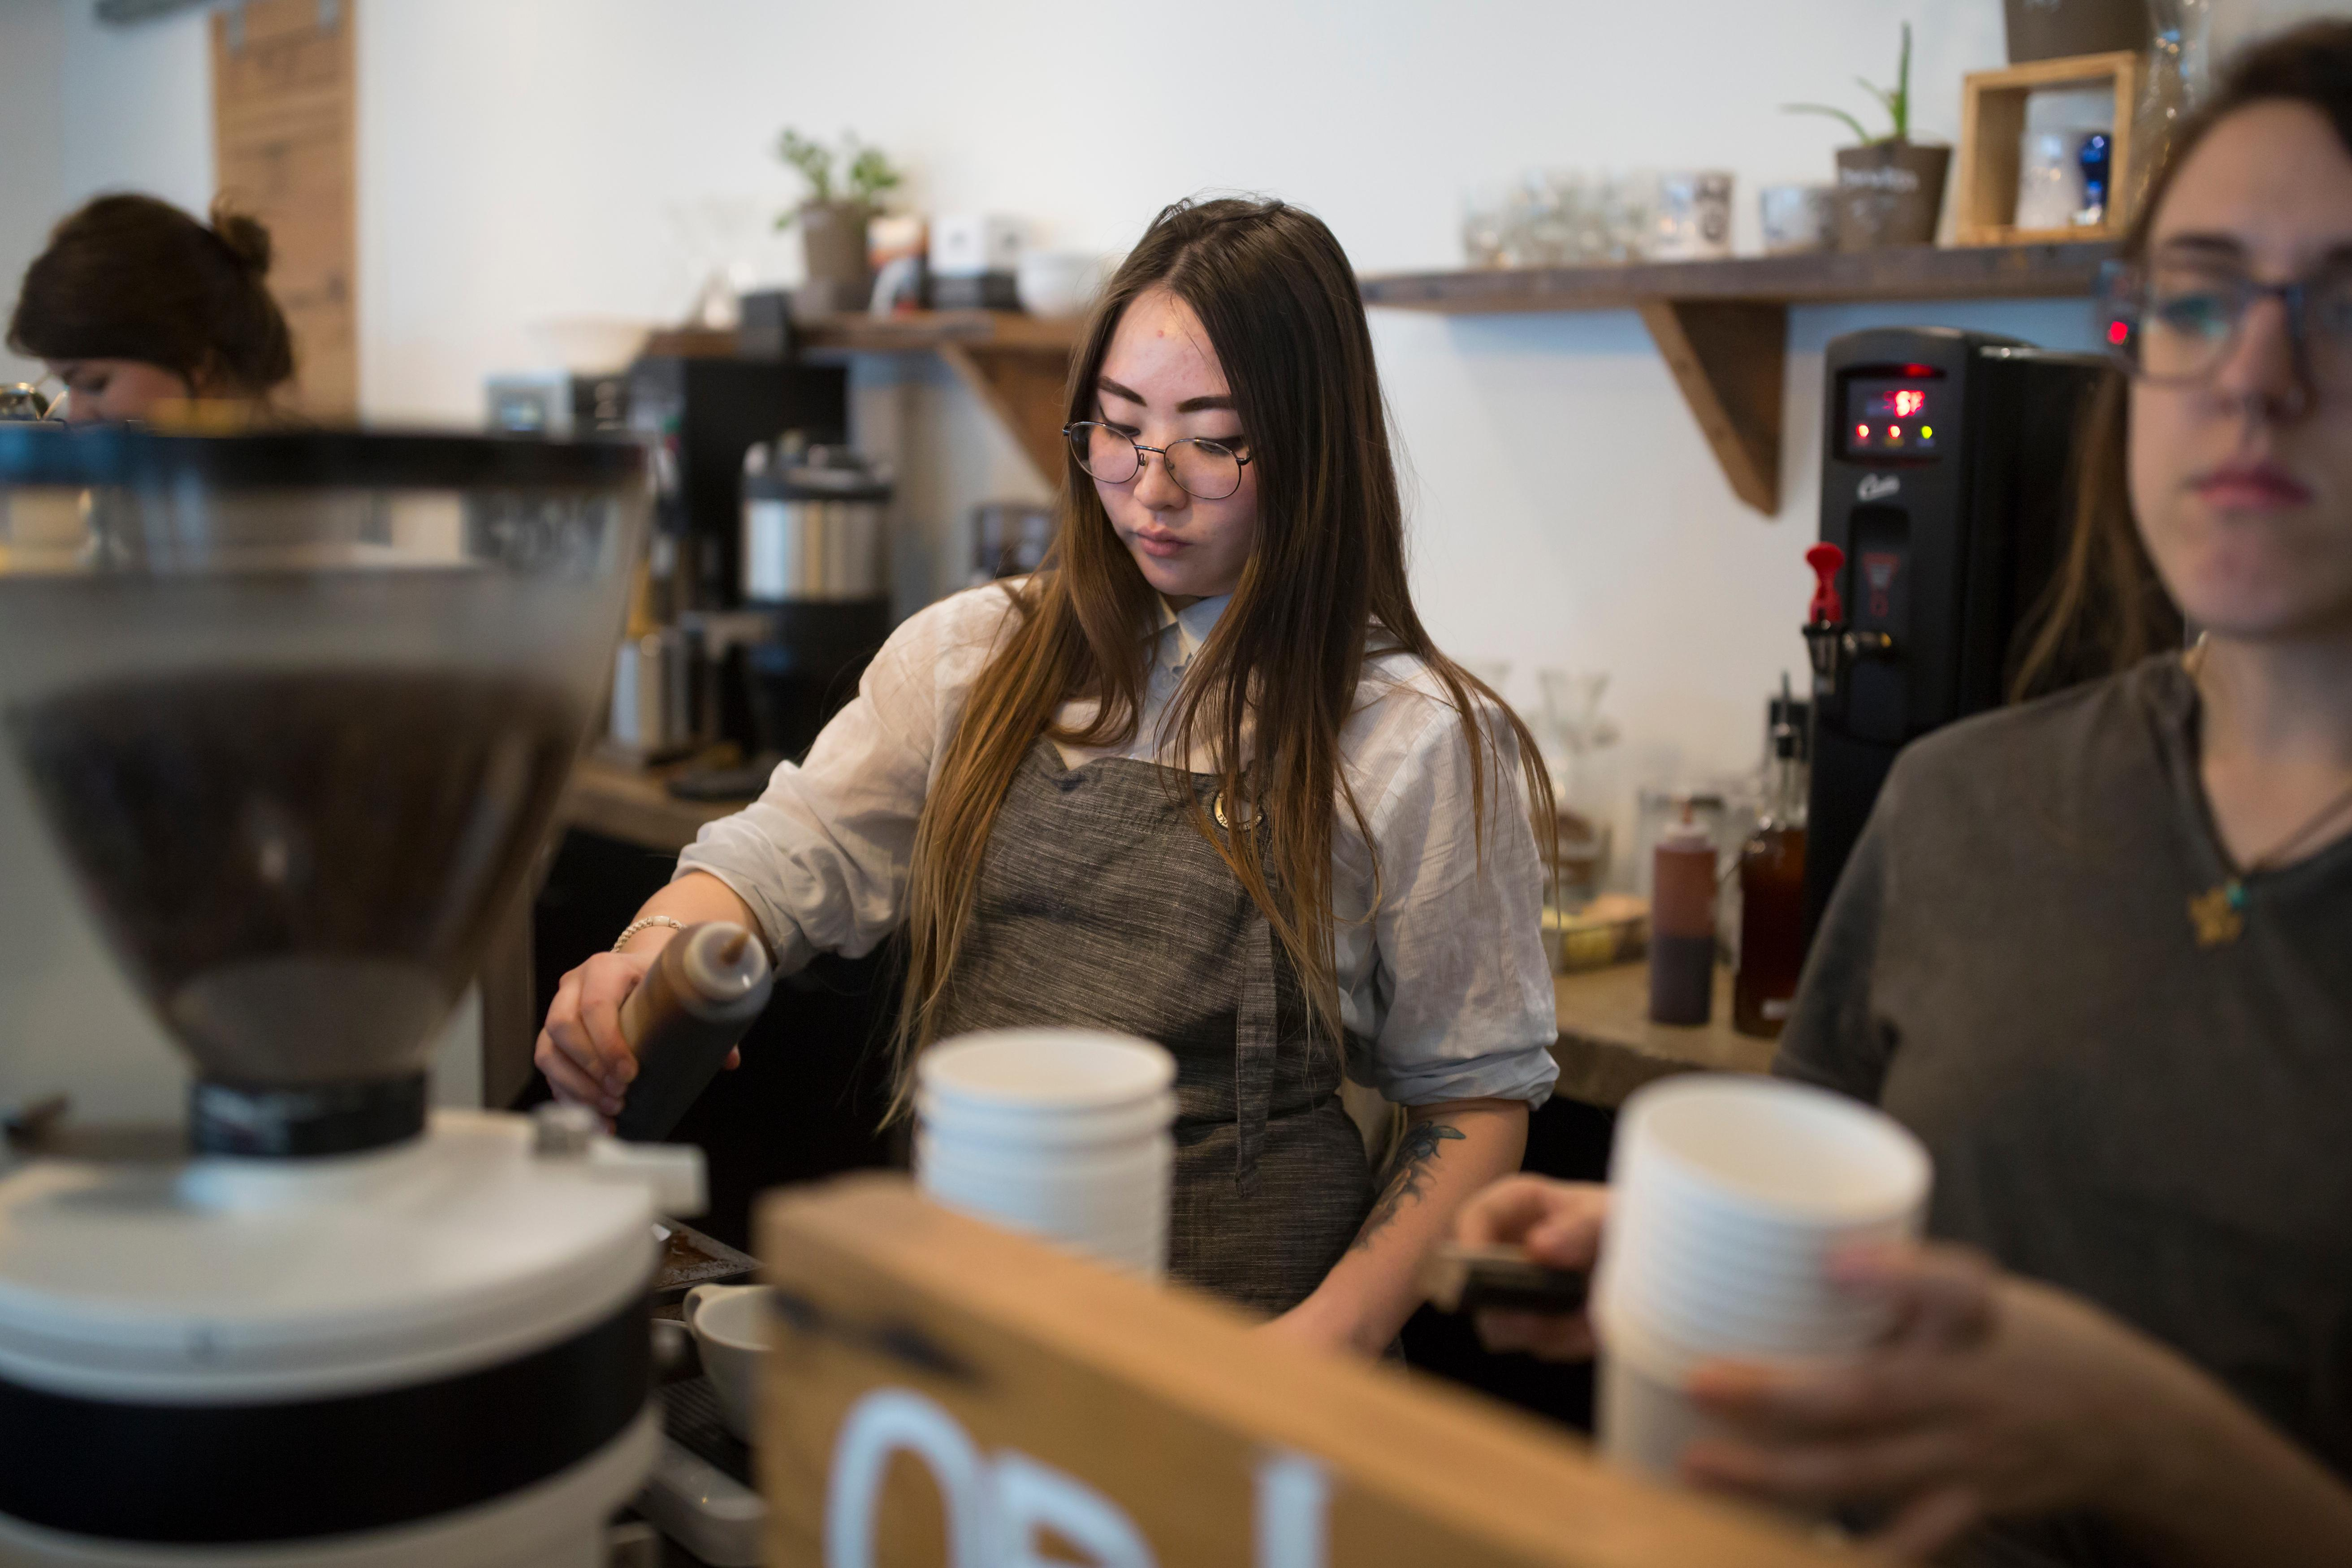 22-year-old Ynga Chernogradskaia makes a cup of coffee for a customer at Street Bean Coffee Roasters, a local coffee shop and non-profit that's dedicated to providing work opportunities for street-involved youth. Chernogradskaia became homeless after coming to the U.S. in September 2016, but found work through the program and is now living on her own. (Sy Bean / Seattle Refined)